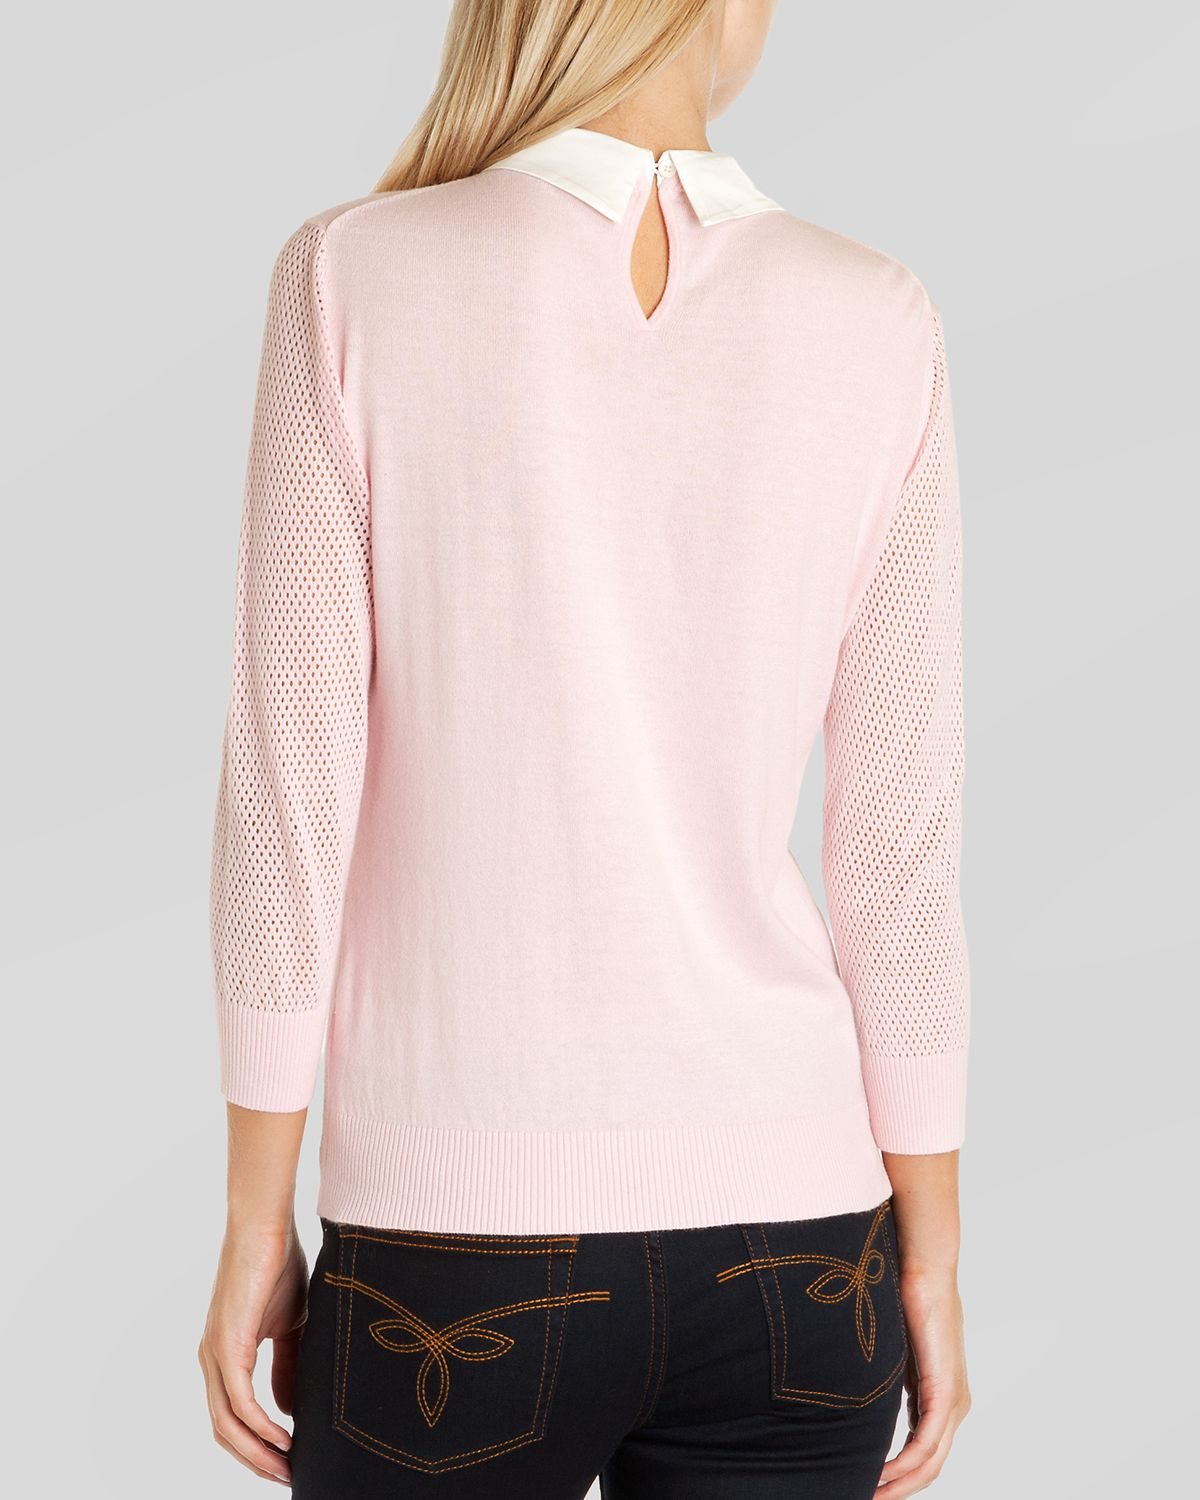 Ted baker Sweater - Helane Embellished Collar in Pink | Lyst